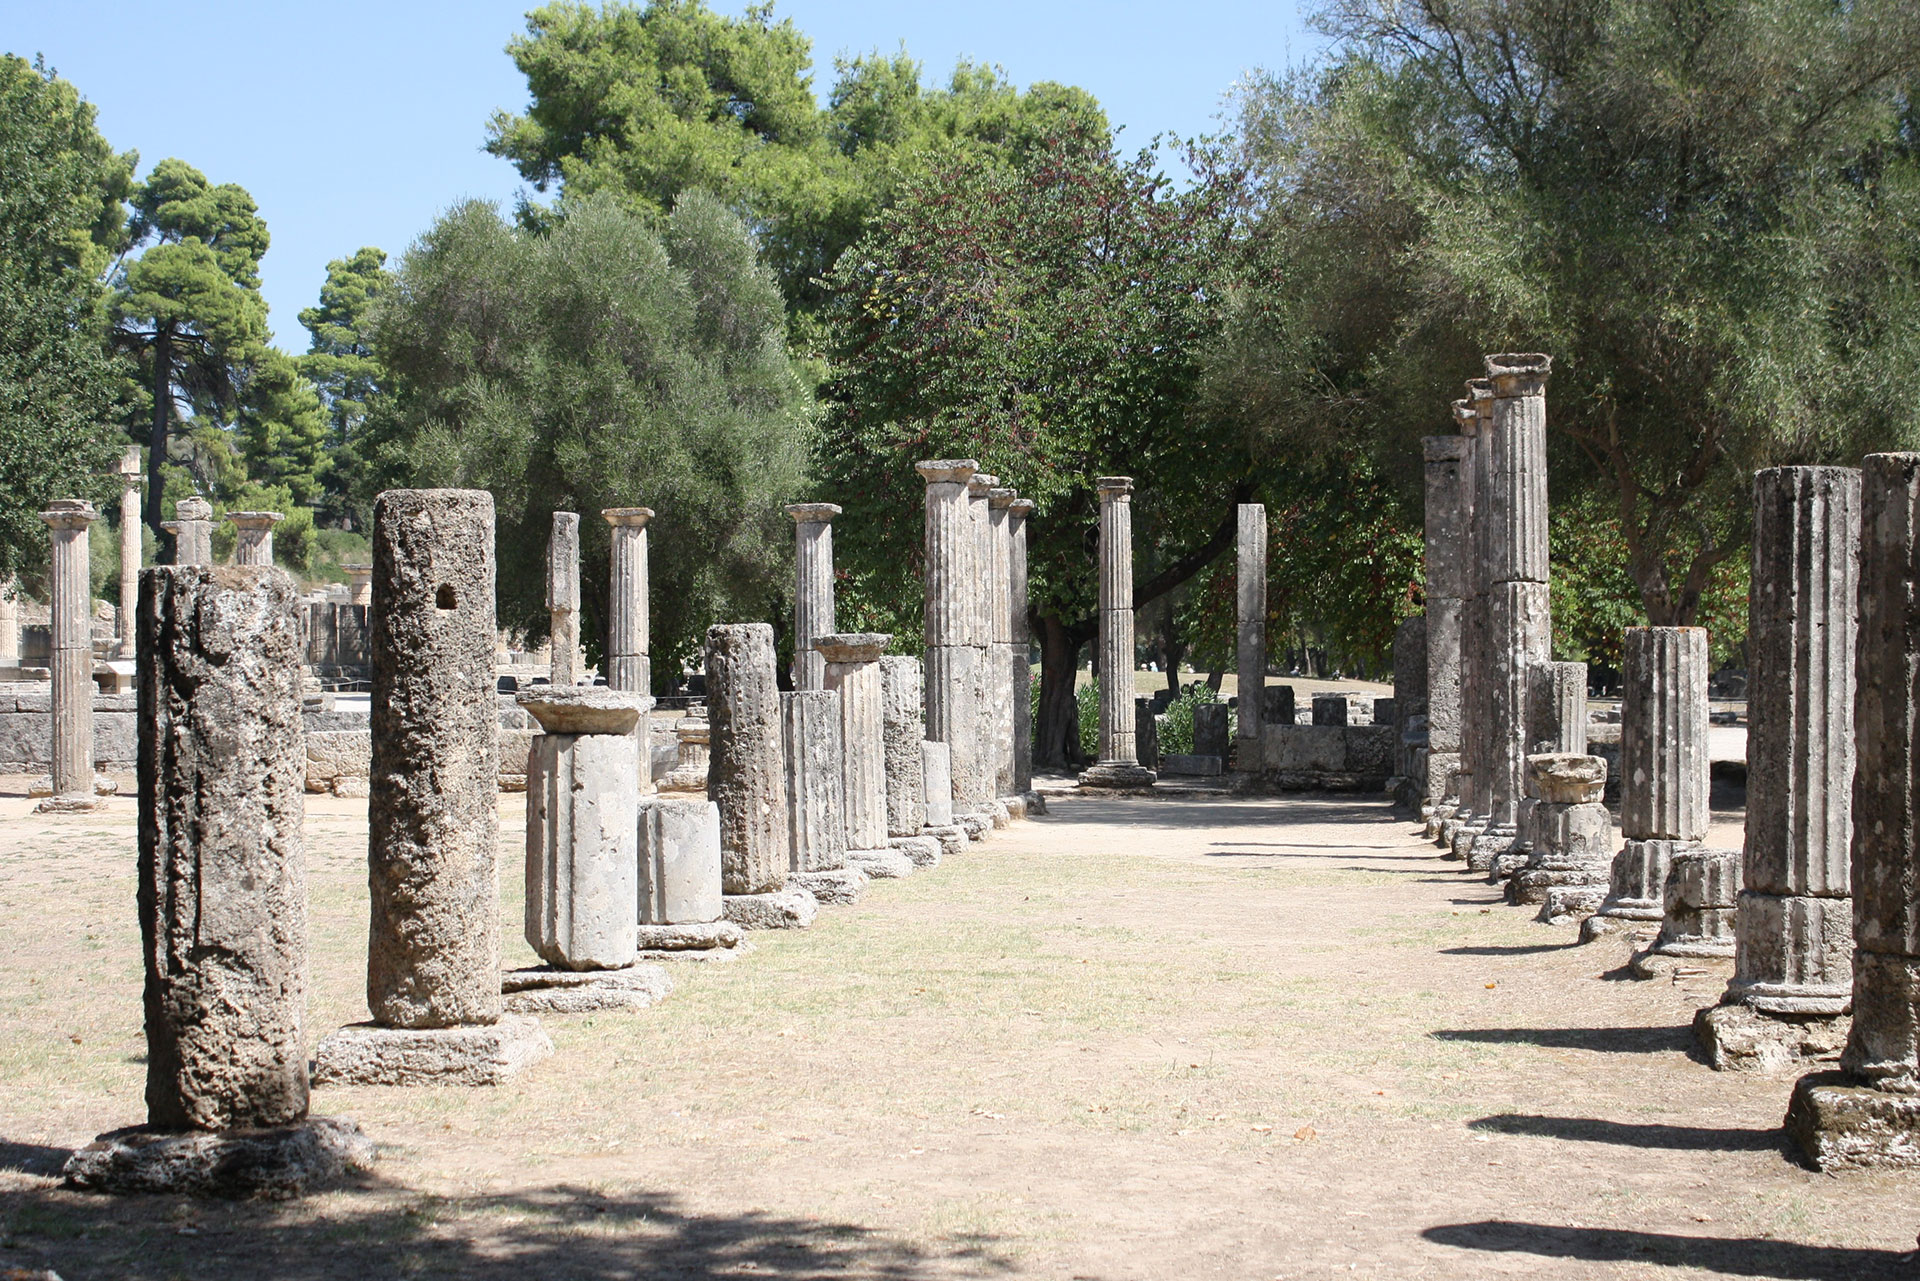 Gymnasium in the ancient site of Olympia with column ruins